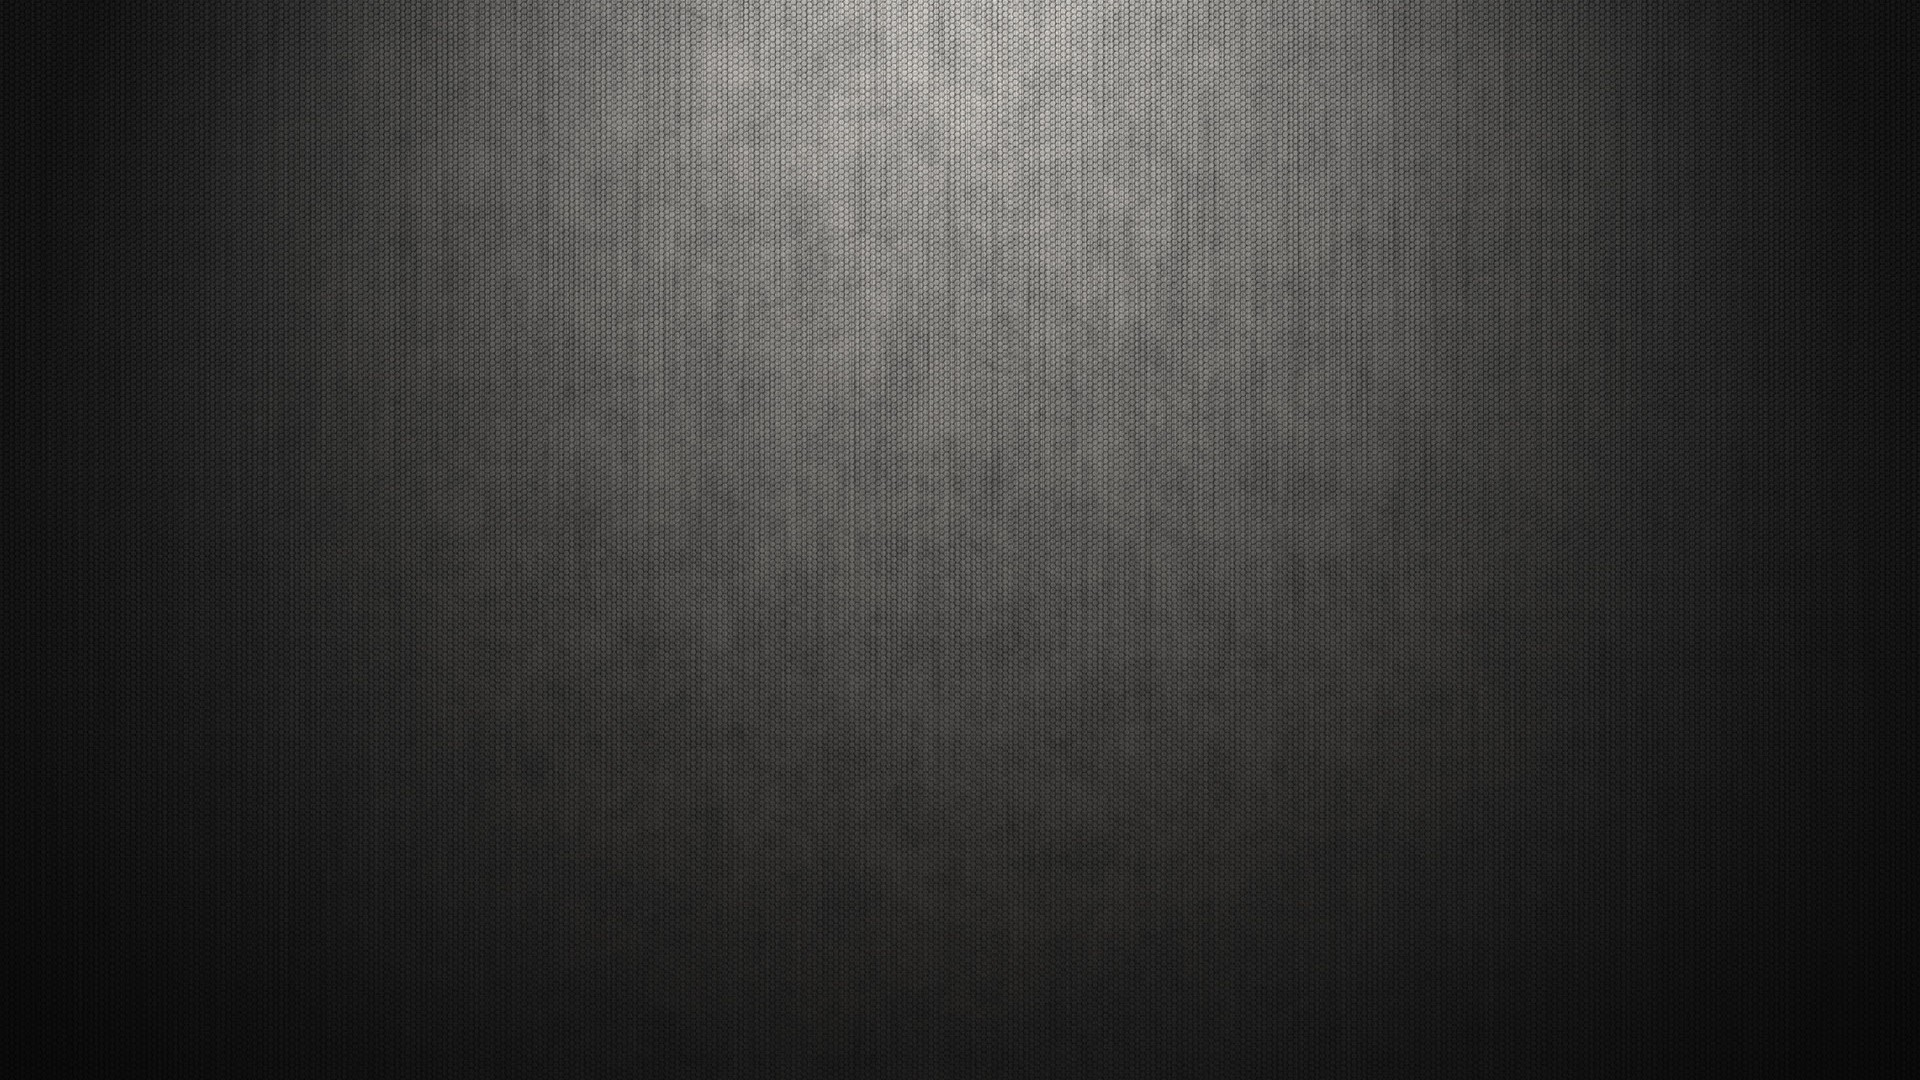 Get the latest gray, black, shadow news, pictures and videos and learn all  about gray, black, shadow from wallpapers4u.org, your wallpaper news source.